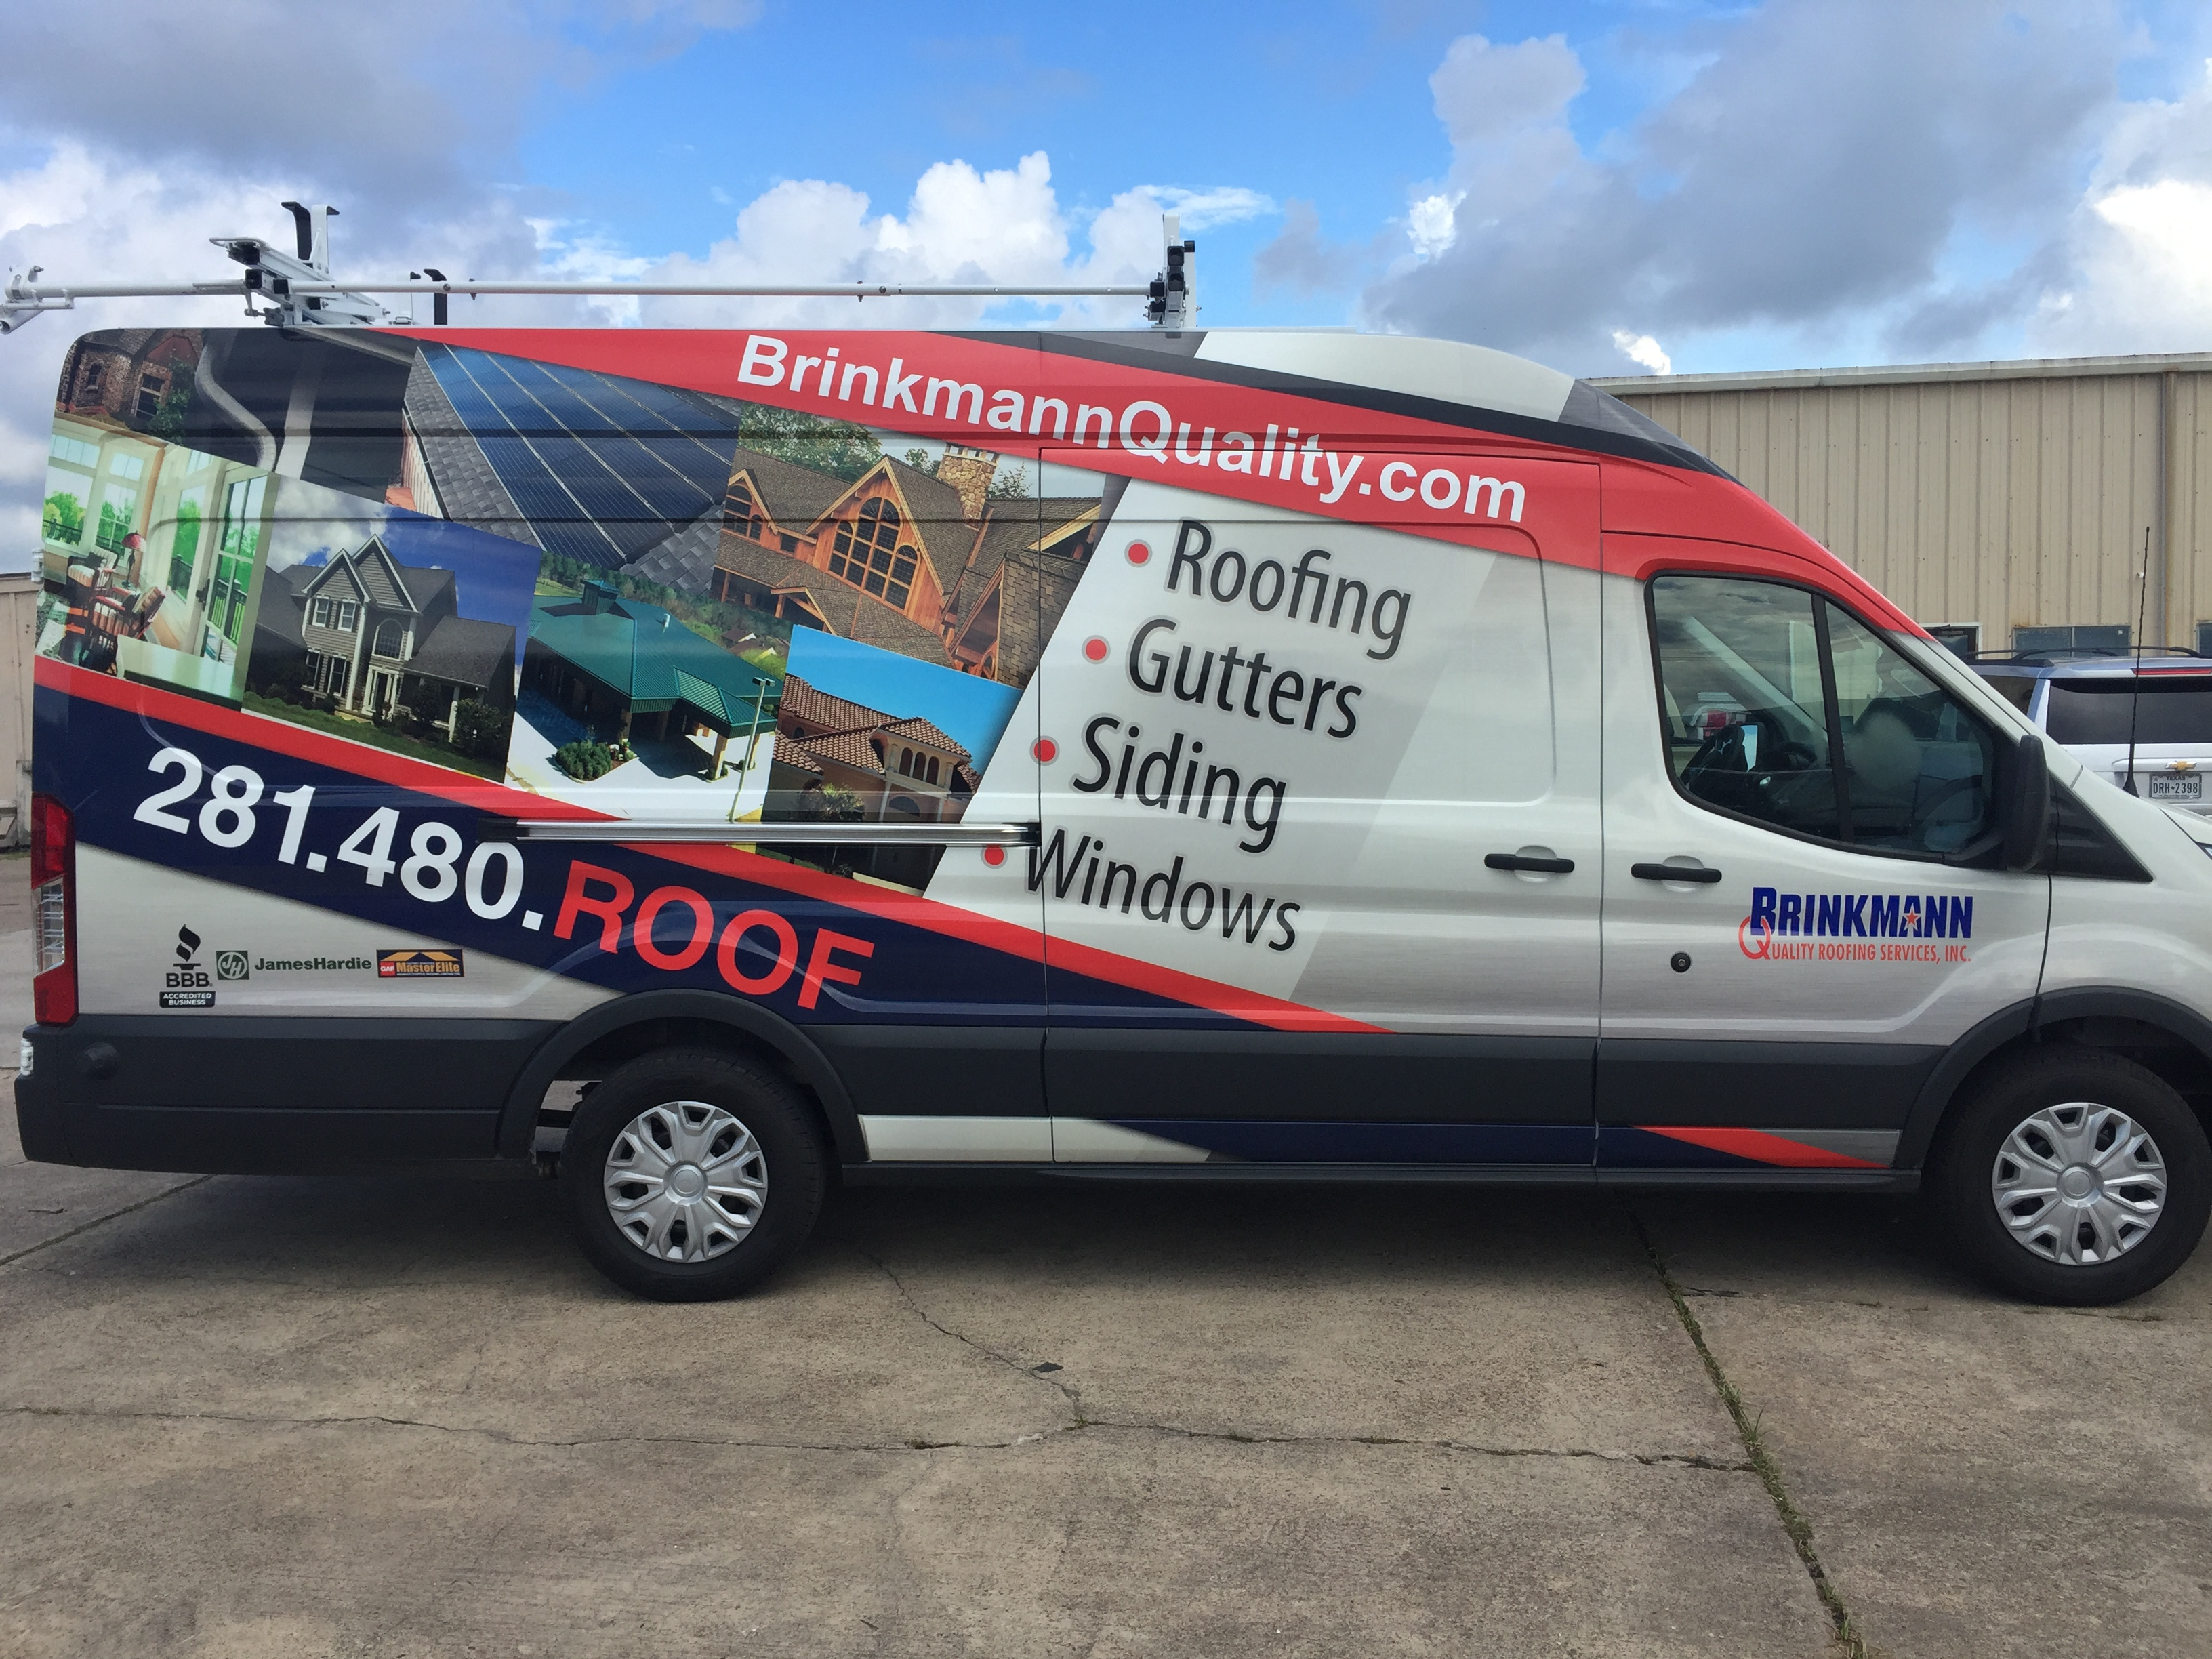 Brinkmann Quality Roofing Services image 1